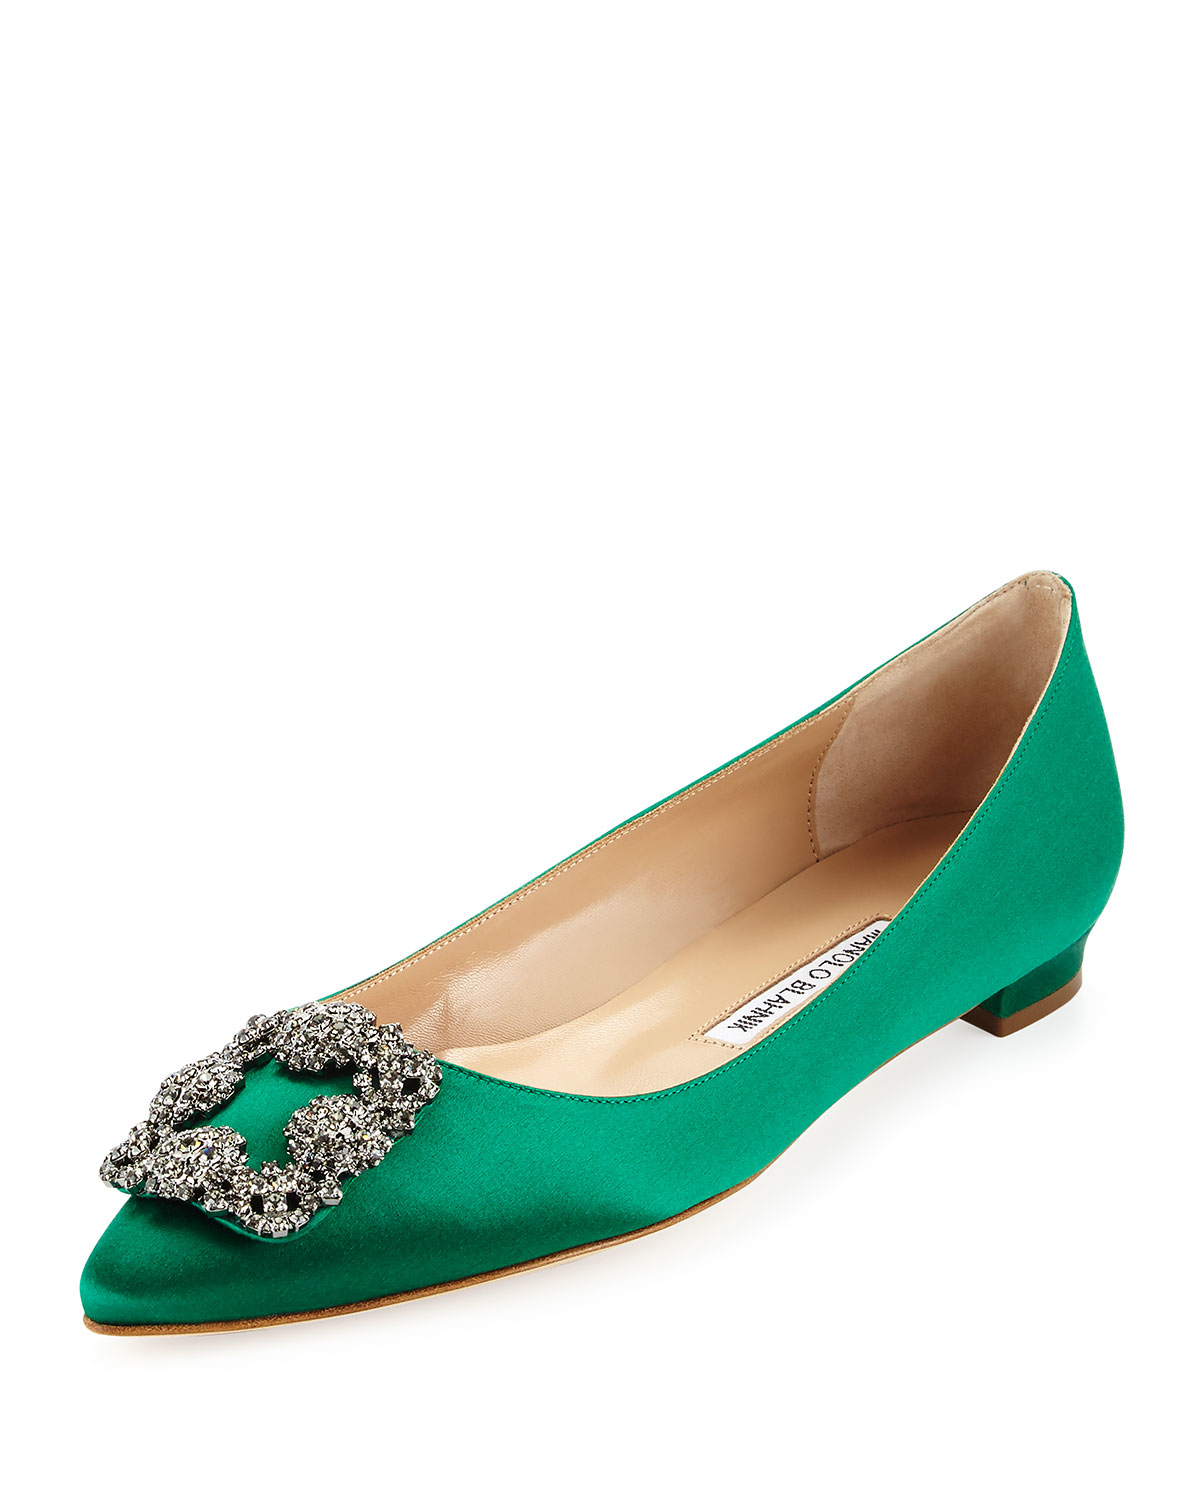 manolo blahnik flat pumps